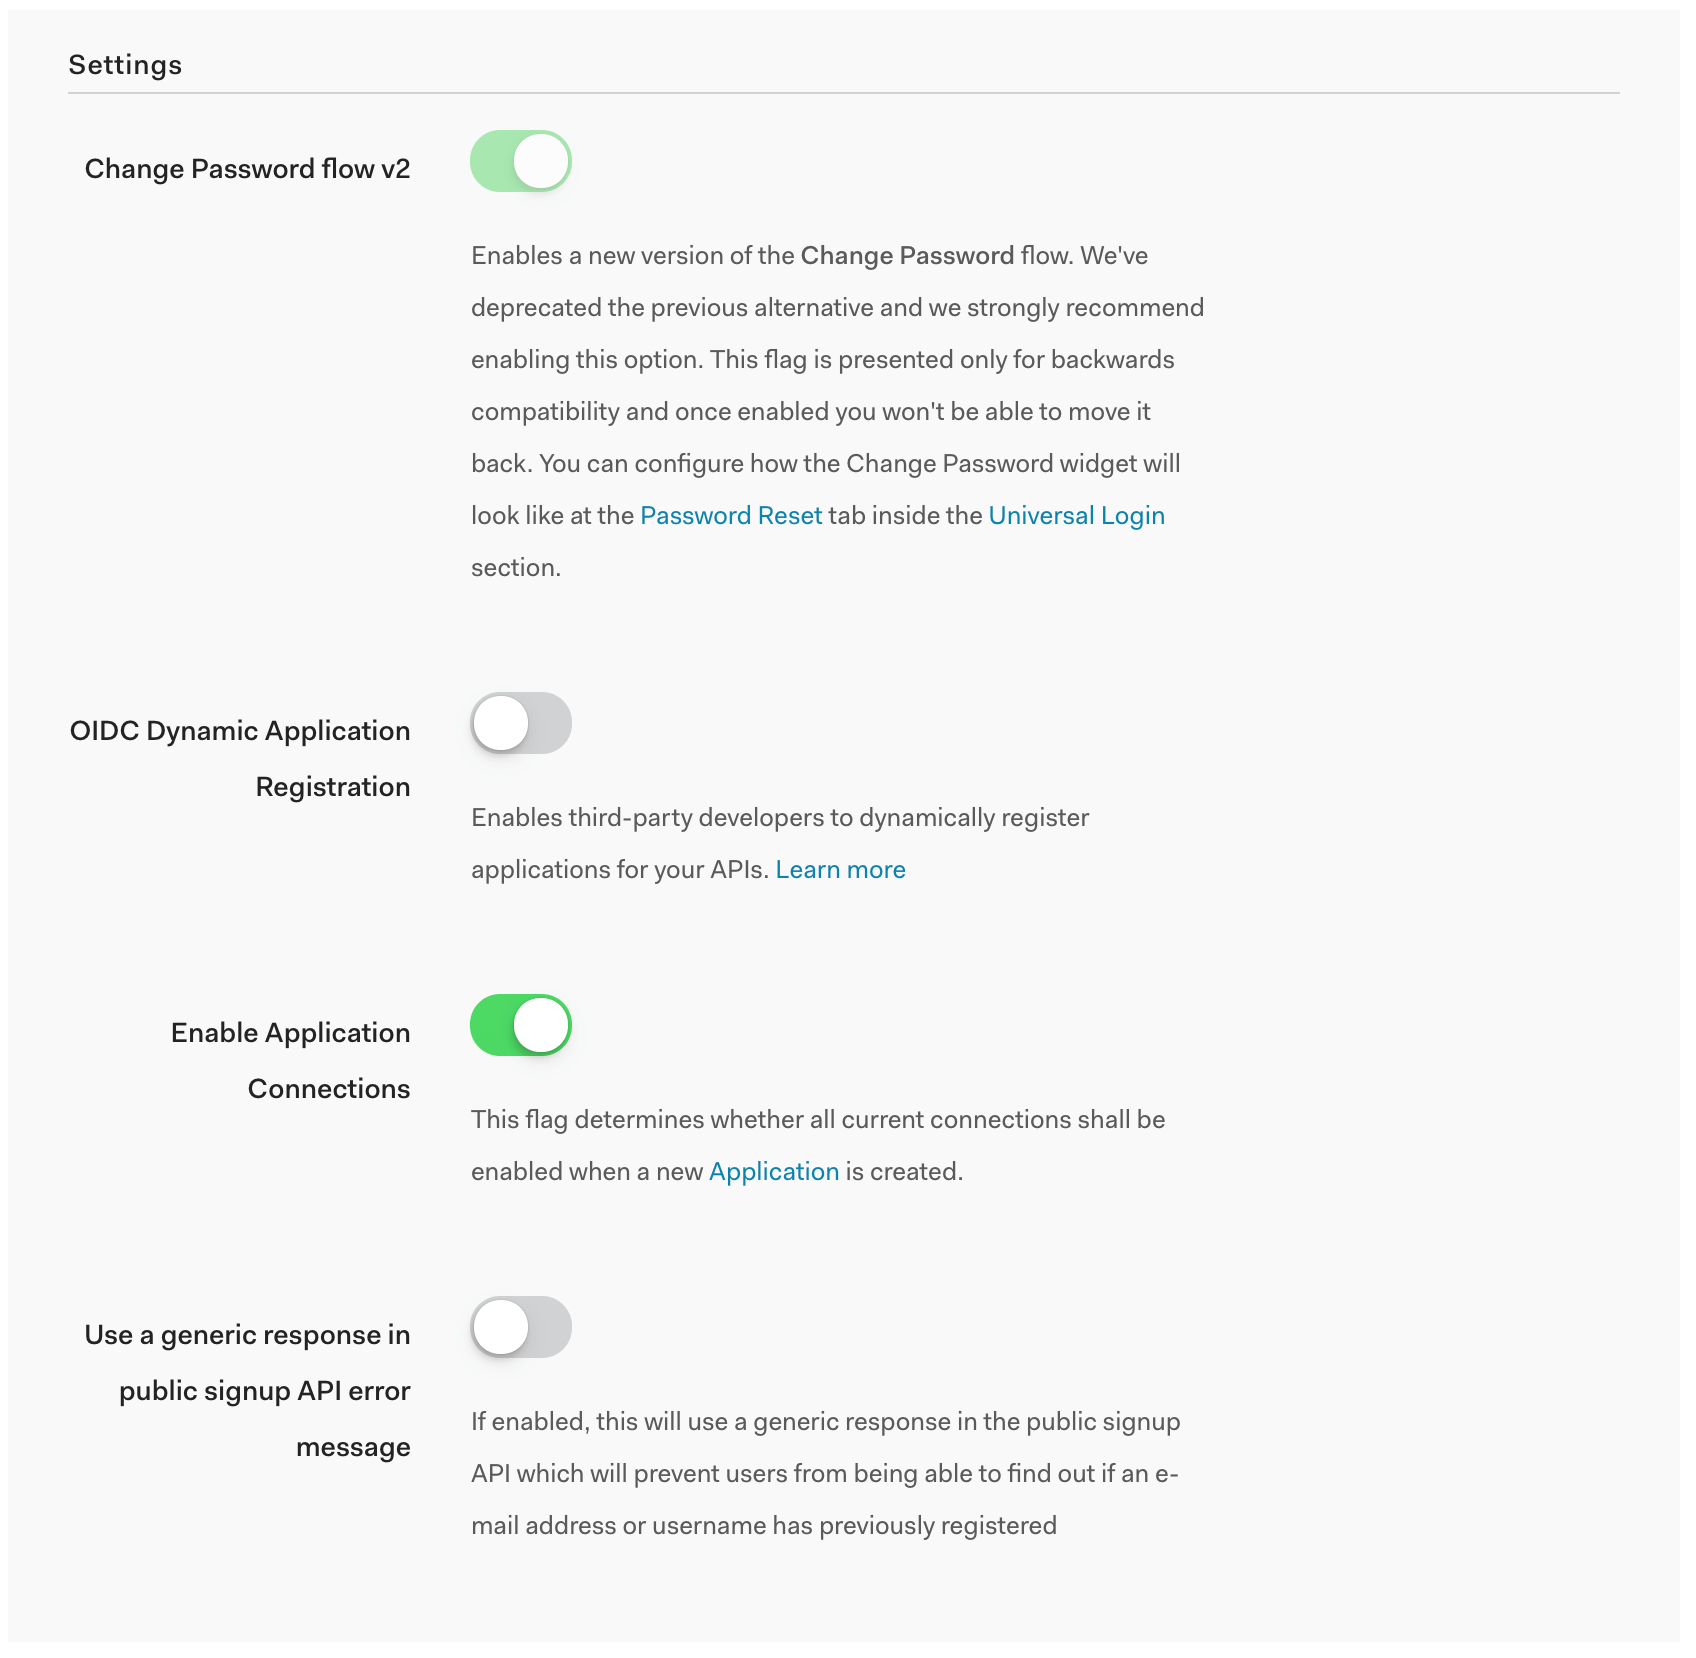 Tenant Settings in the Auth0 Dashboard